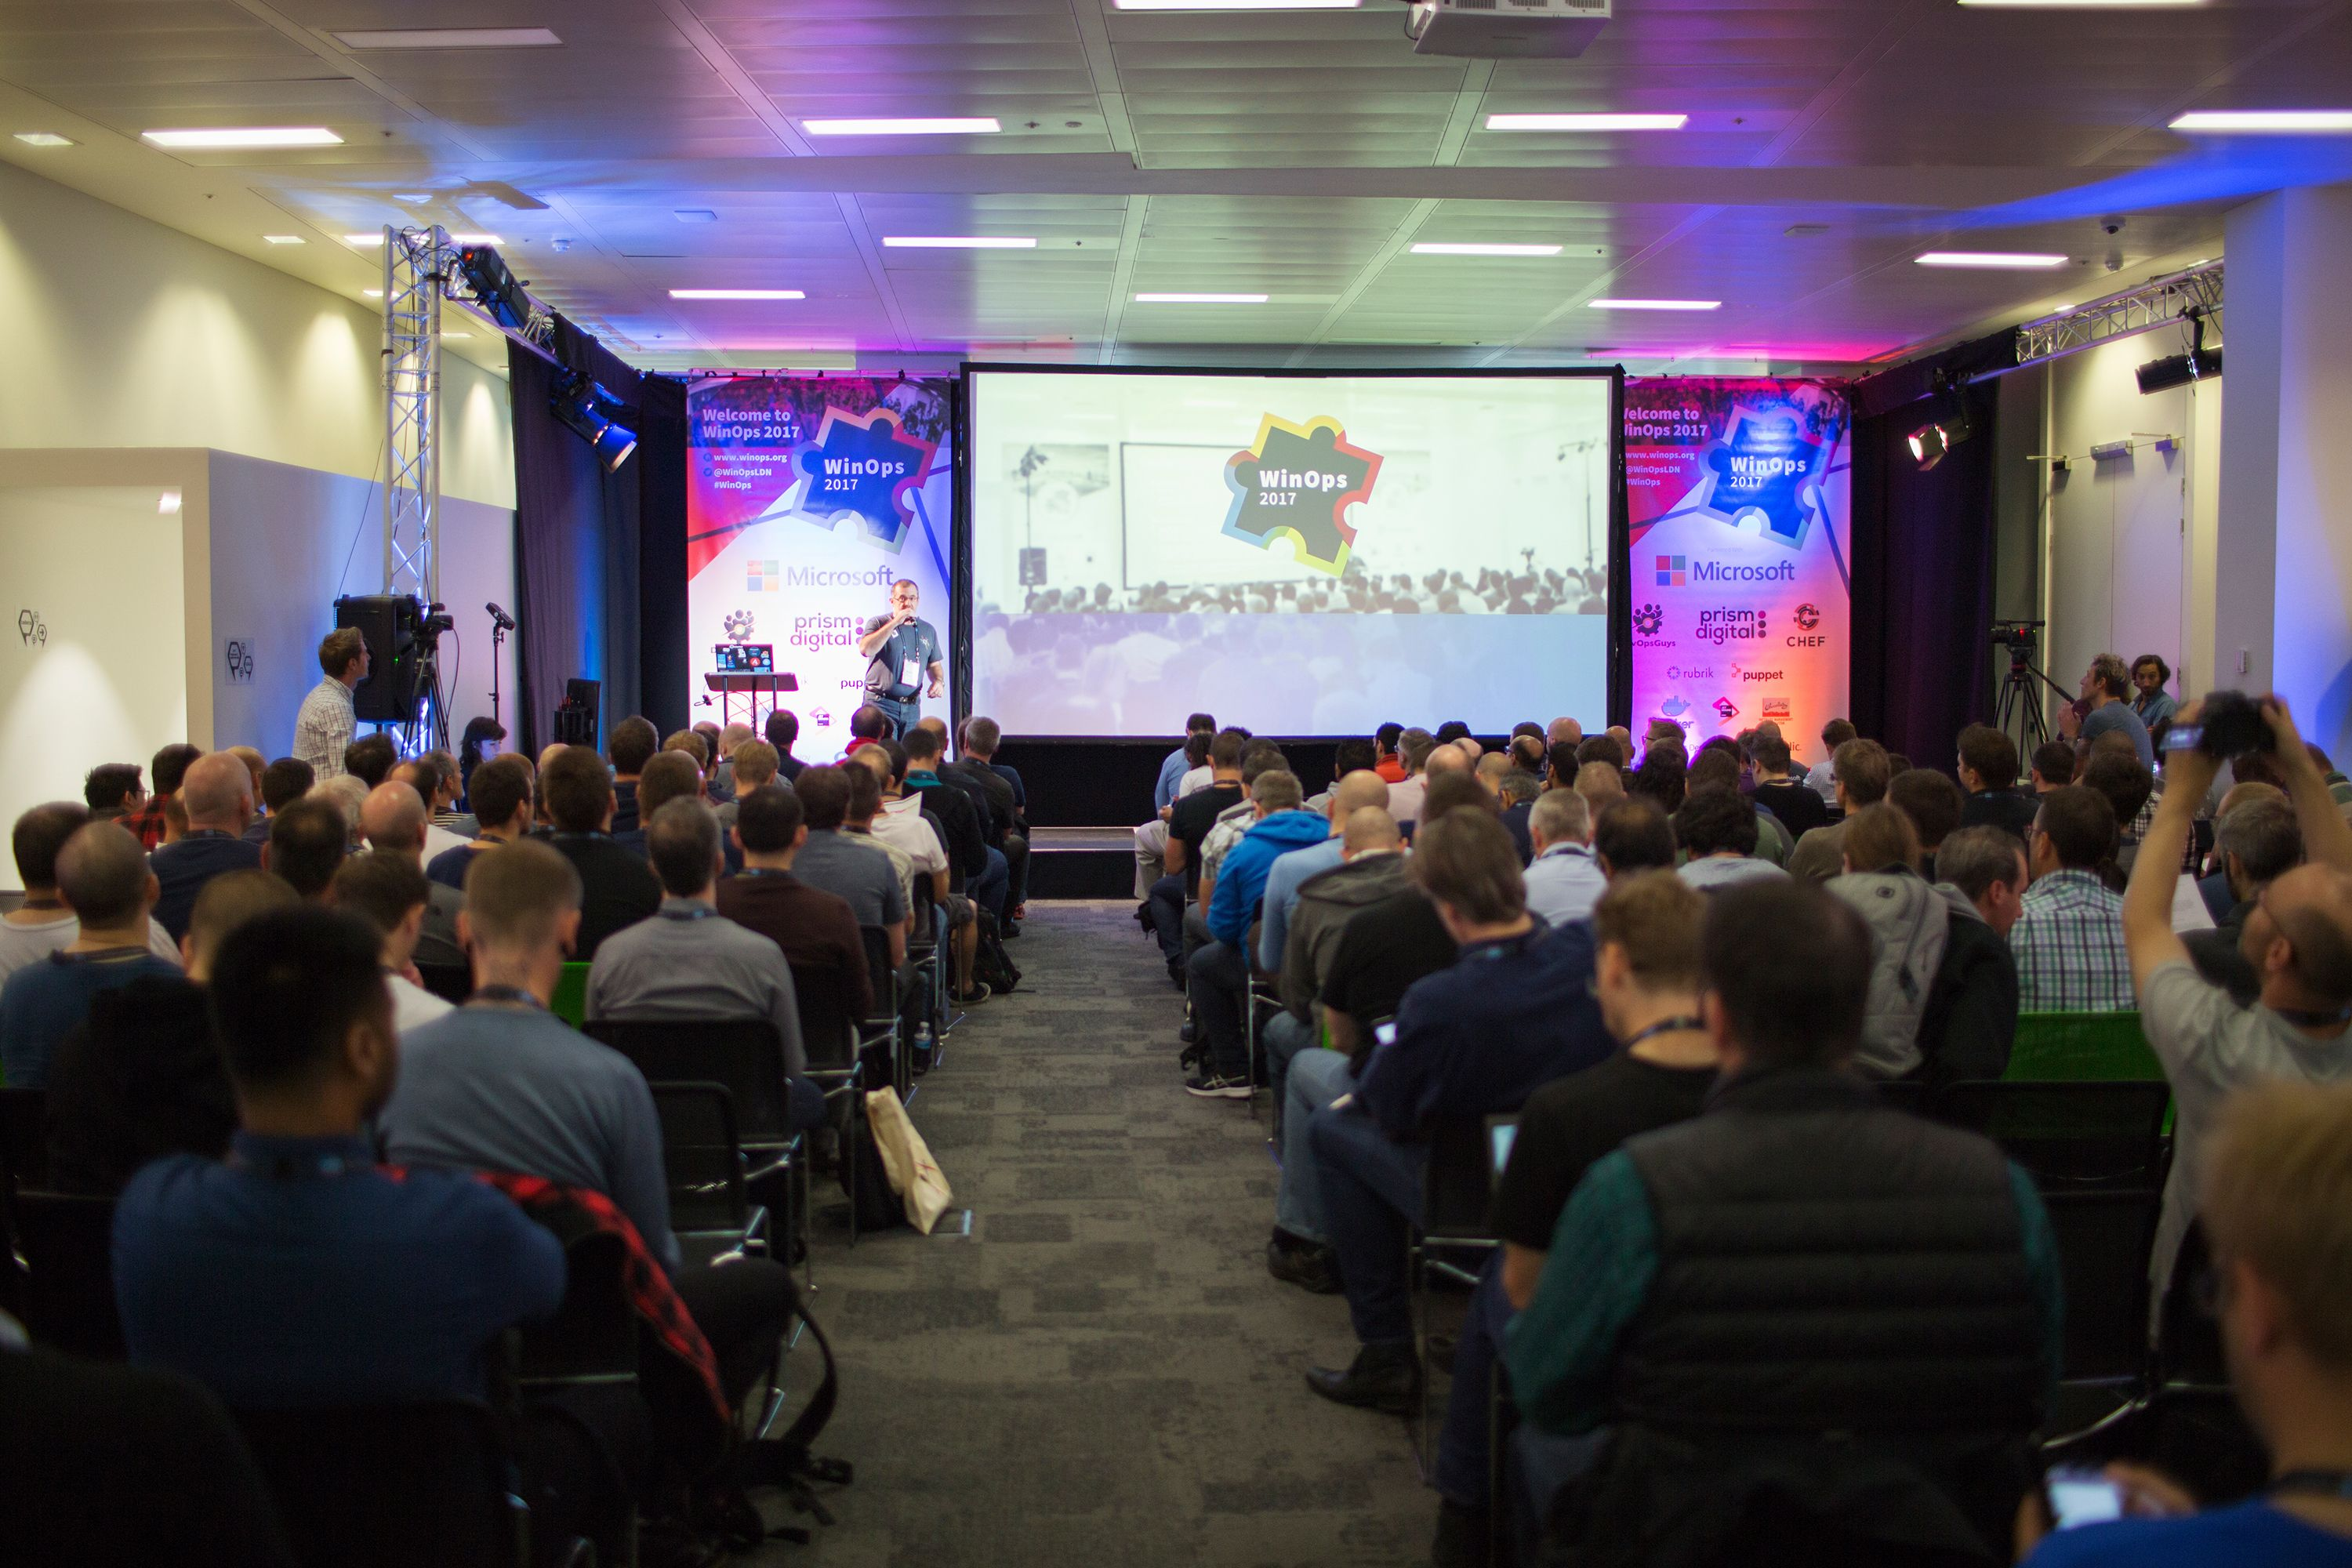 WinOps London - DevOps on Windows